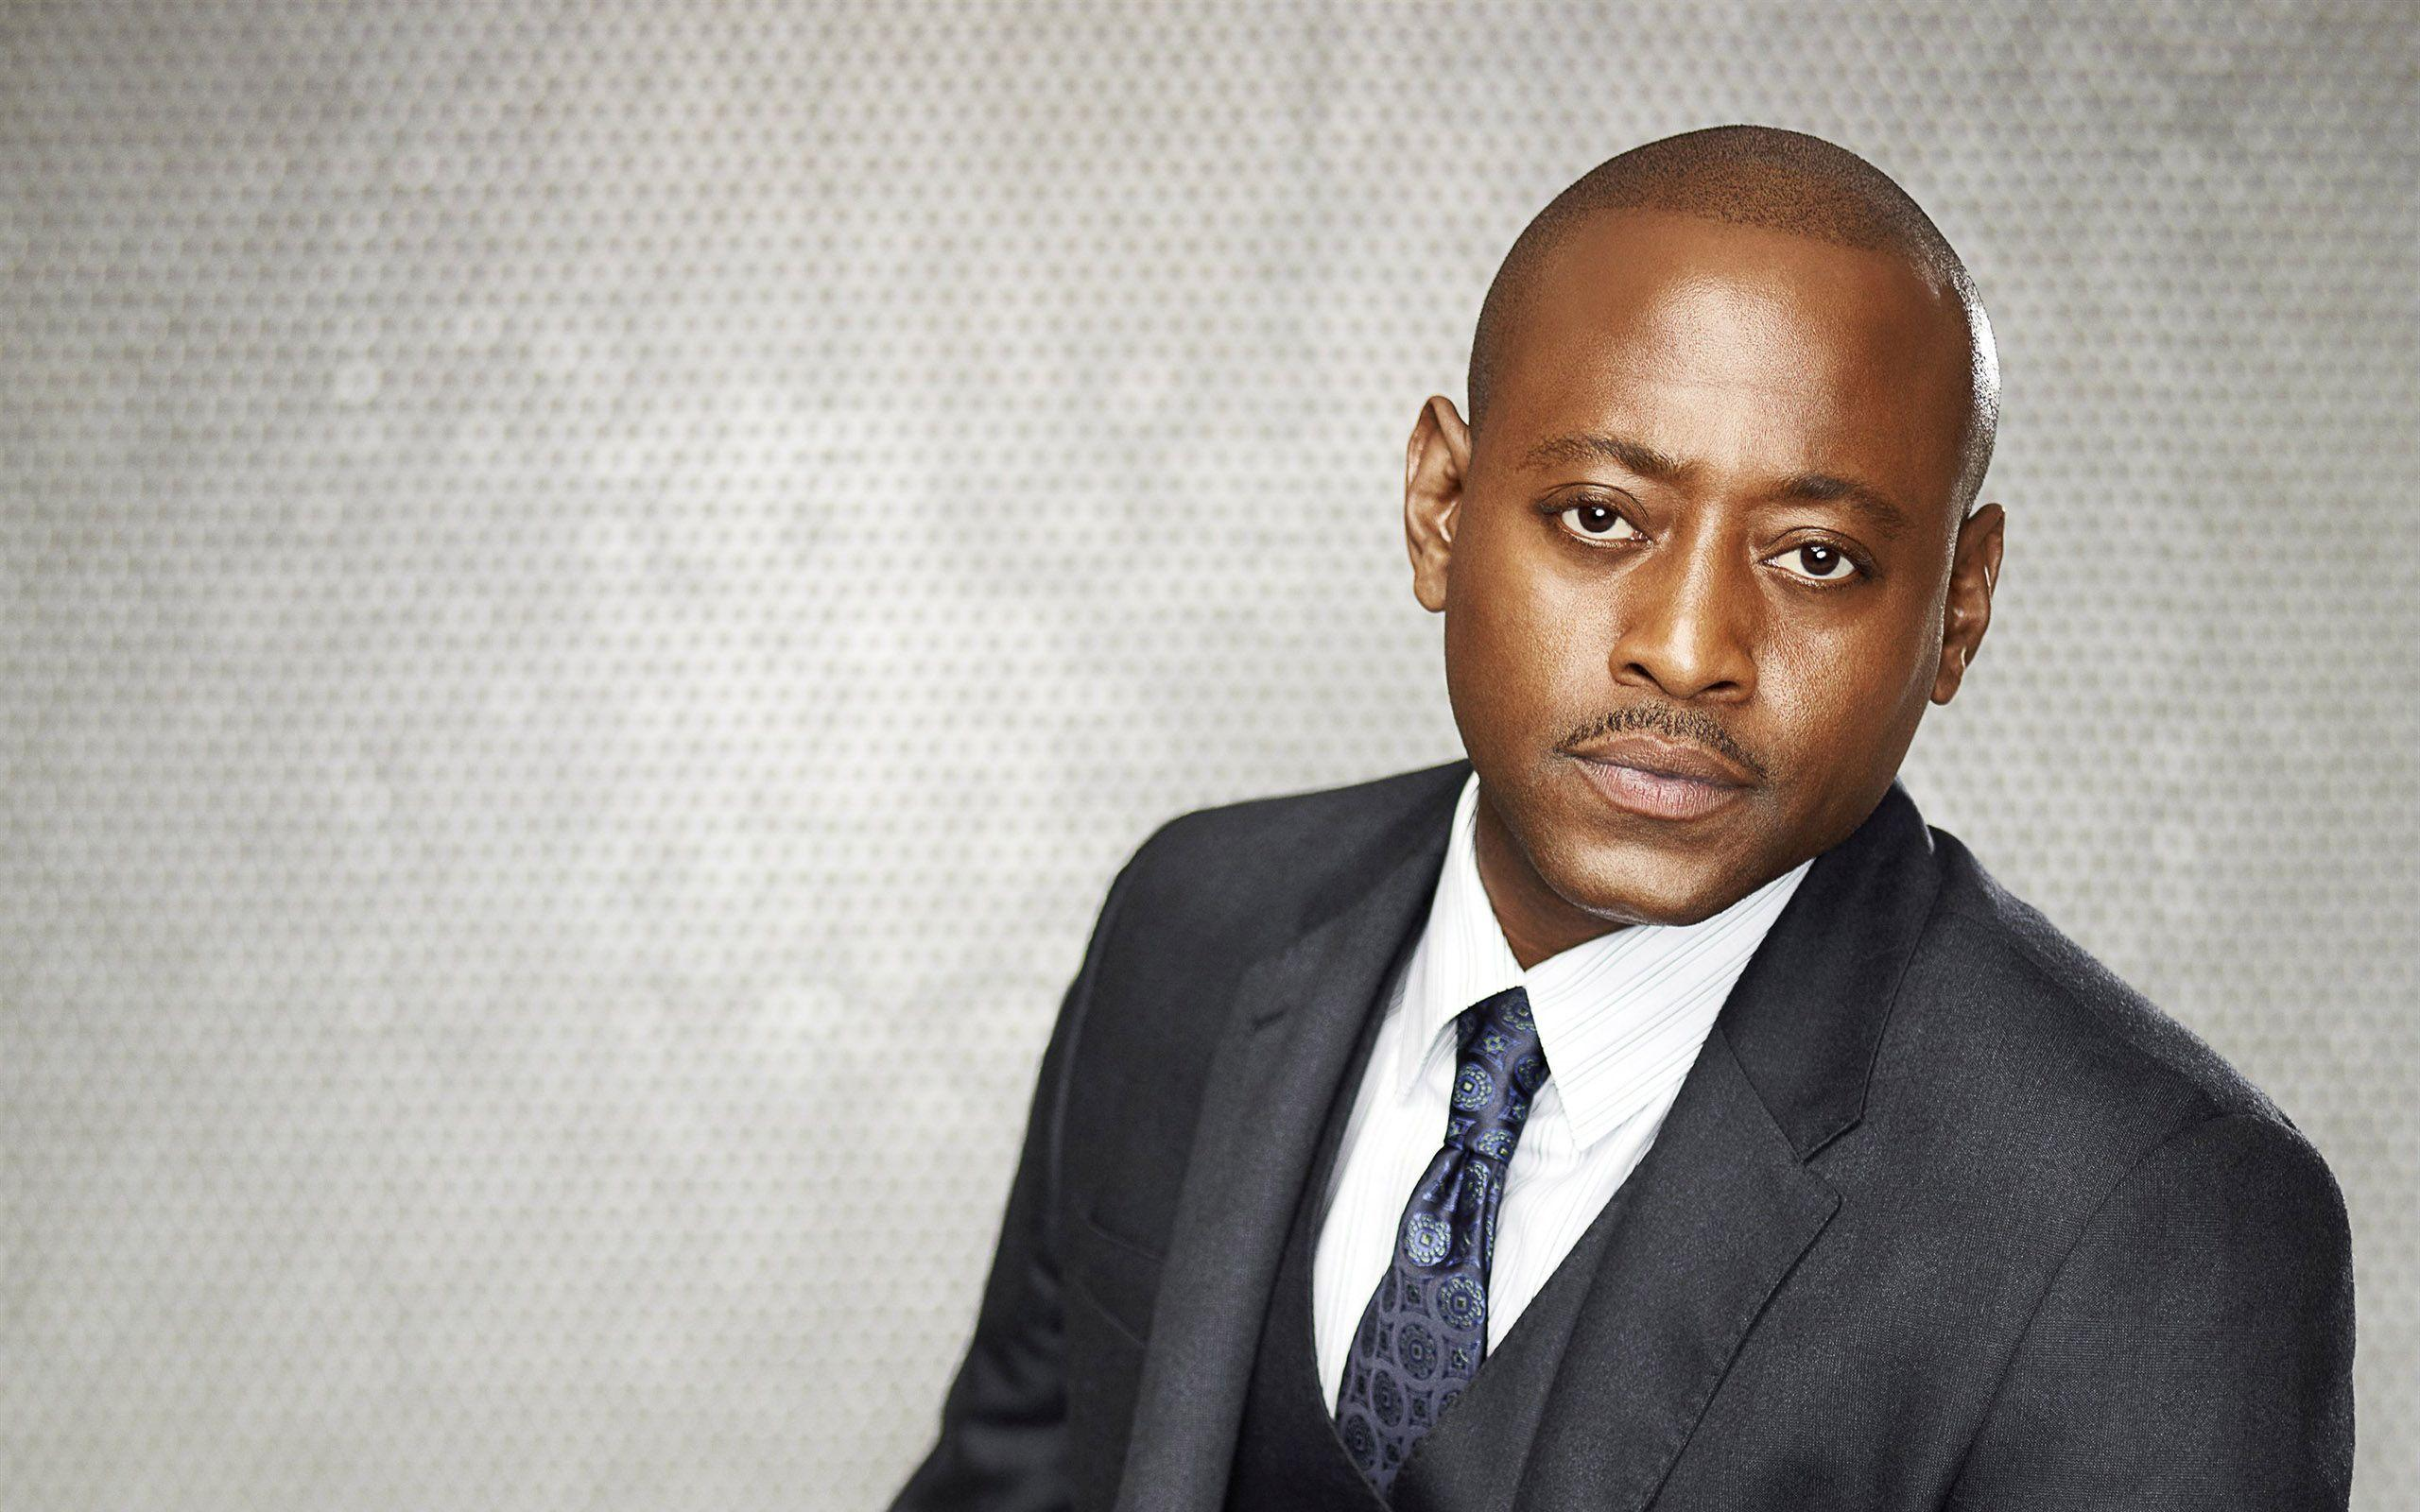 omar epps interviewomar epps wiki, omar epps height, omar epps 2016, omar epps wesley snipes, omar epps brother, omar epps er, omar epps discography, omar epps rap, omar epps 2017, omar epps house md, omar epps wikipedia, omar epps and 2pac, omar epps filme, omar epps instagram, omar epps juice, omar epps filmography, omar epps how i met your mother, omar epps and mike tomlin, omar epps daughter, omar epps interview